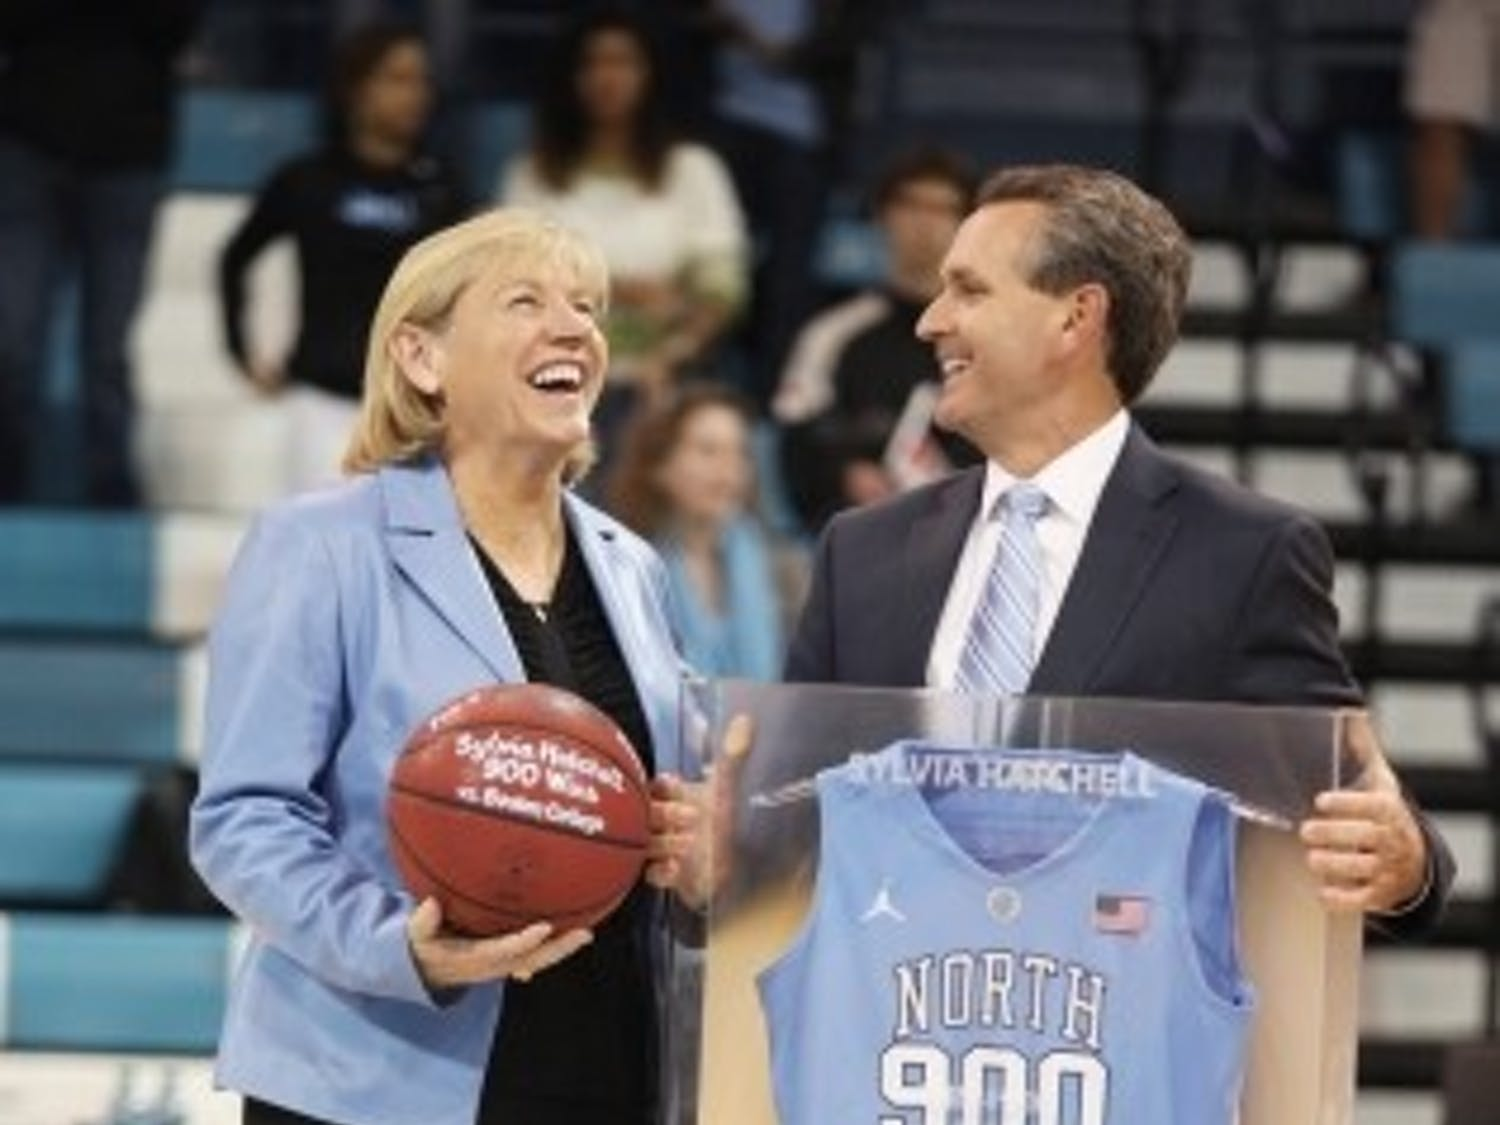 Athletic director Bubba Cunningham (right) presents women's basketball head coach Sylvia Hatchell (left) with a jersey commemorating her 900th win. The win came on Feb. 7, 2013, against Boston College in Carmichael Arena.